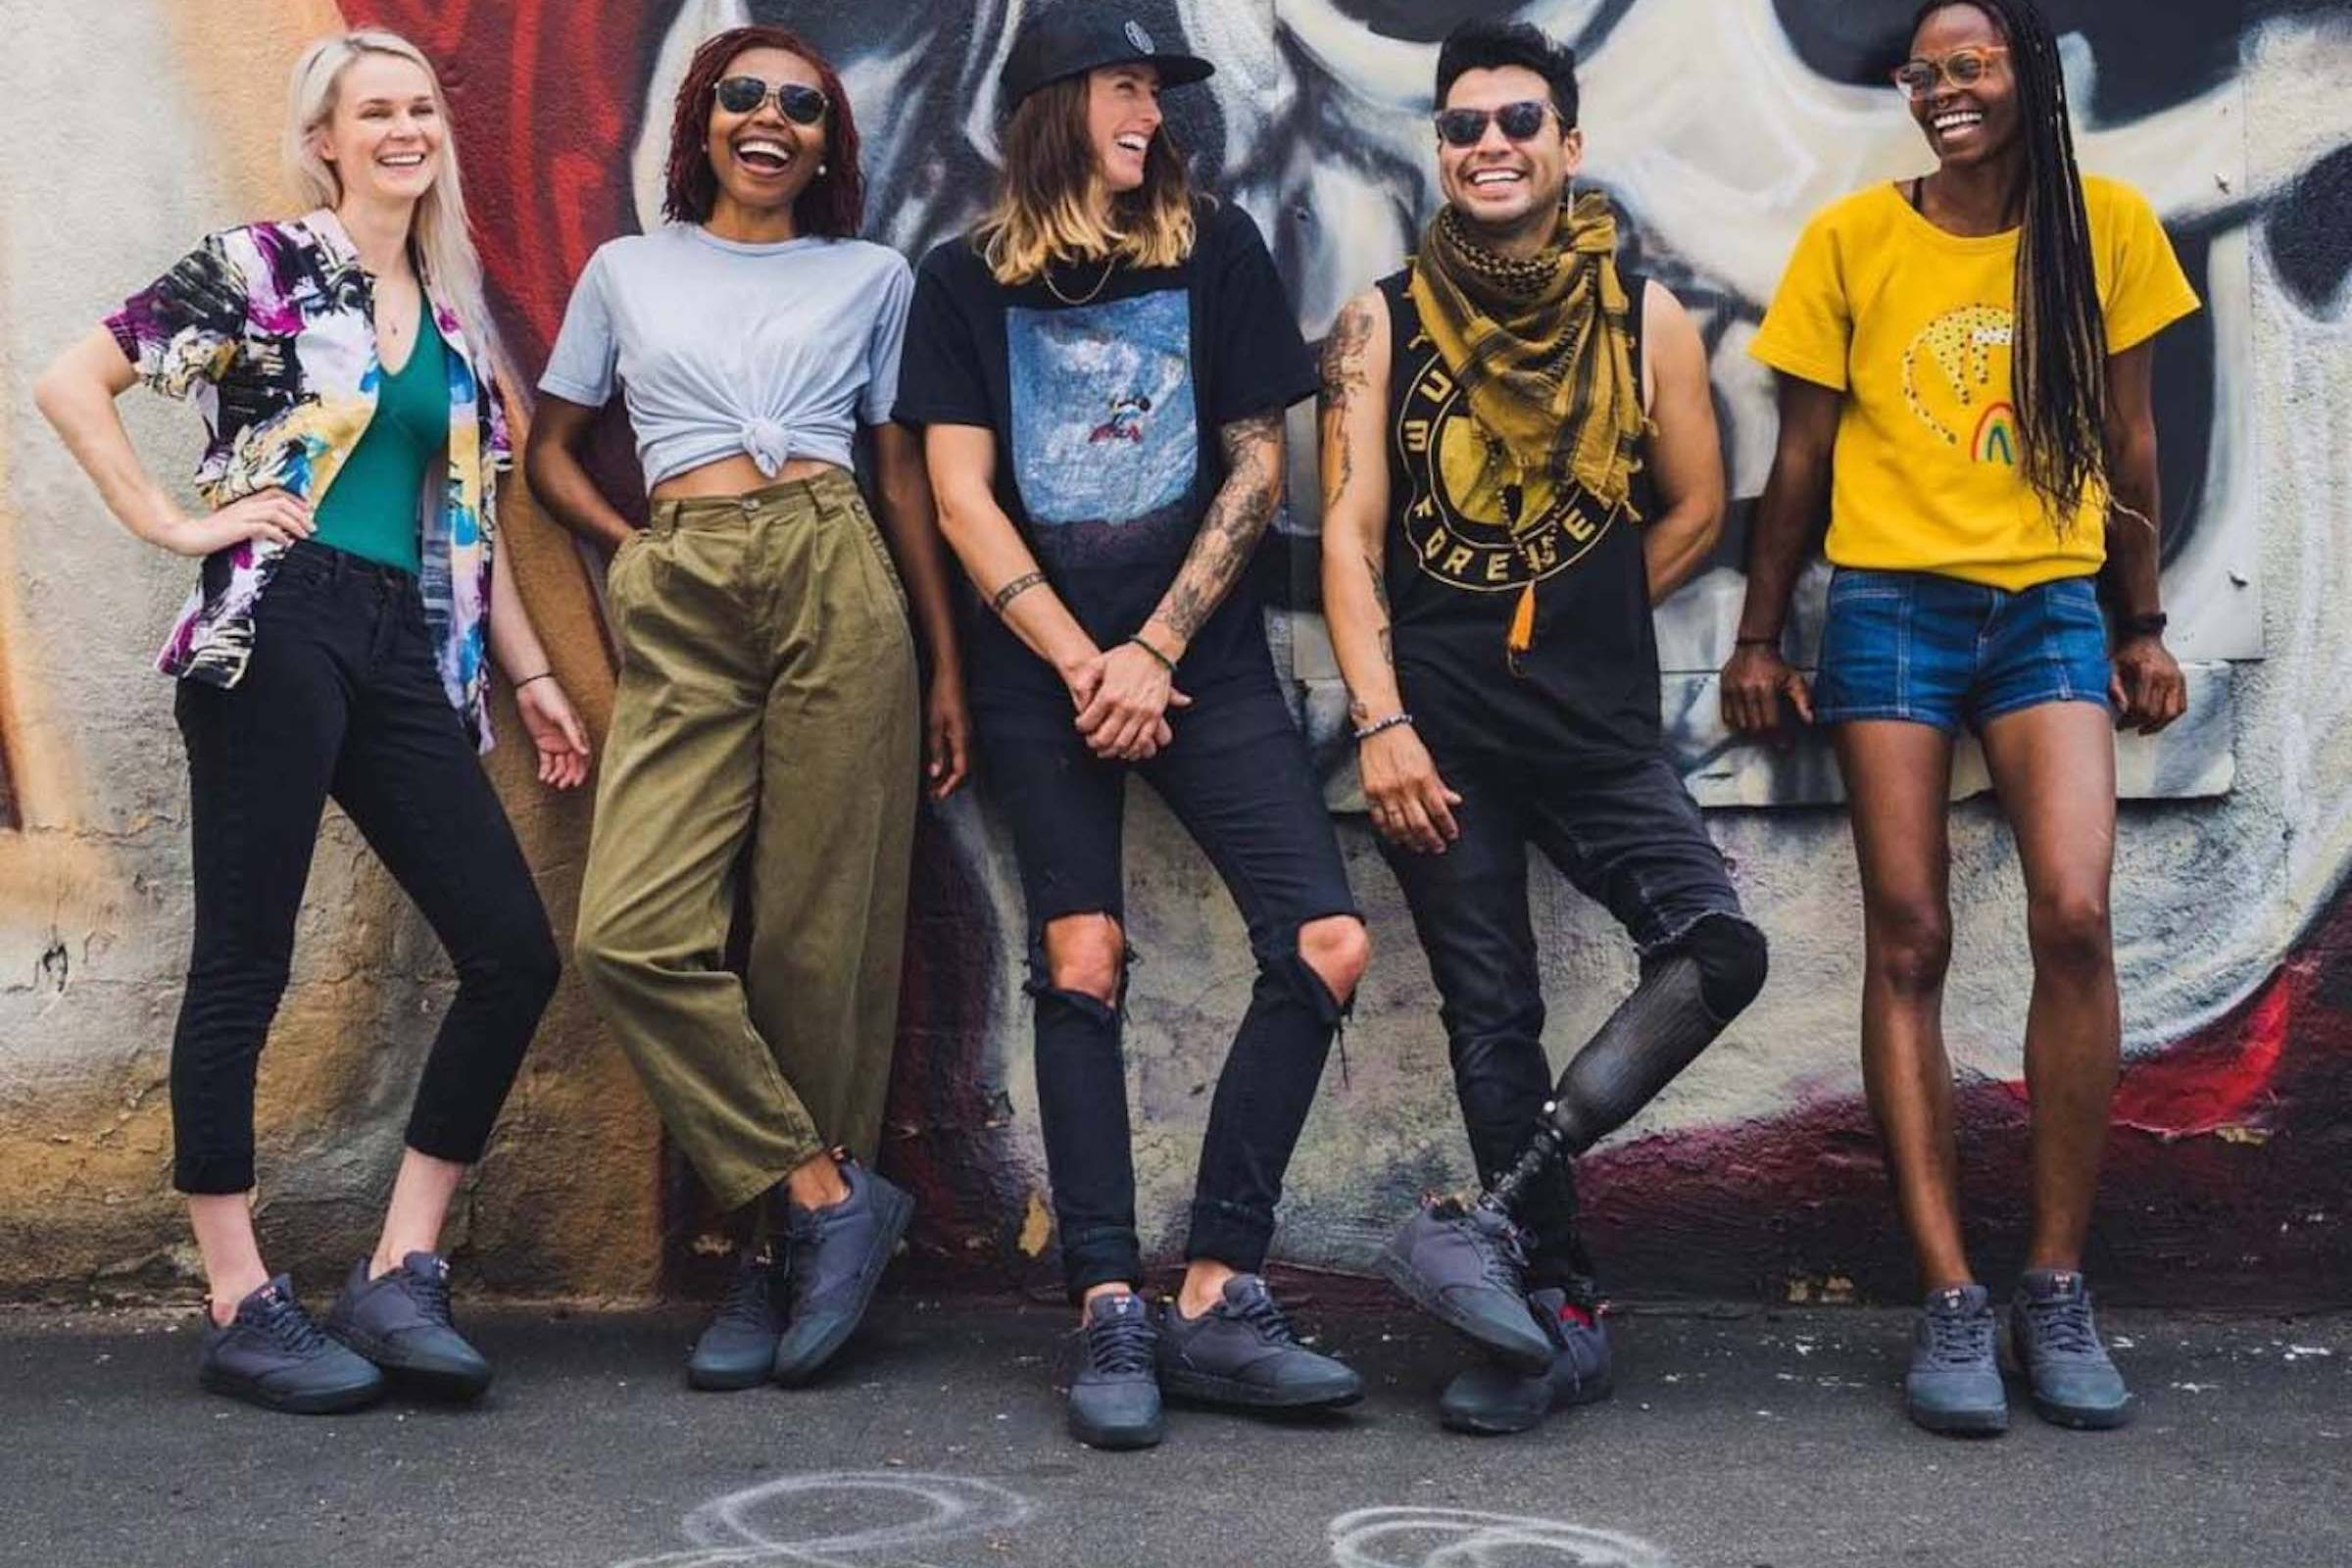 alex johnson and 4 other LGBTQ+ community members pose against a mural in the Evolv Pride Rebel street/approach shoes